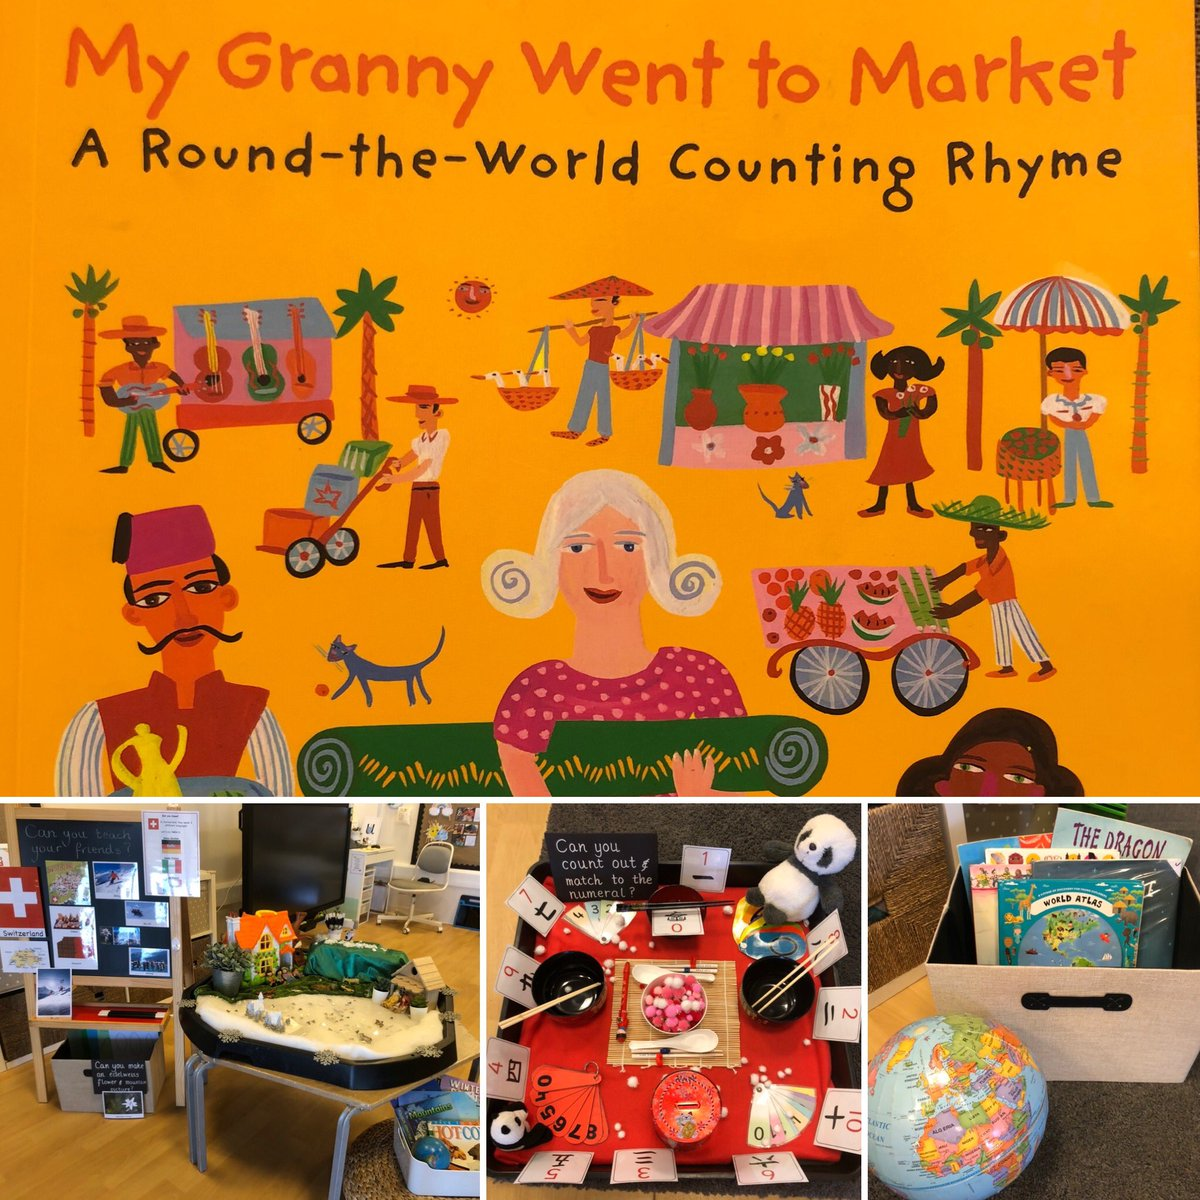 We're headed around the world this week in @DESS_FS1 with Granny & her magic carpet! ... First stop for #dess_fs1_red is Switzerland! #mygrannywenttomarket #switzerland #ChineseNewYear2020#aroundtheworld #flyingcarpet pic.twitter.com/iqvtNwHNA0